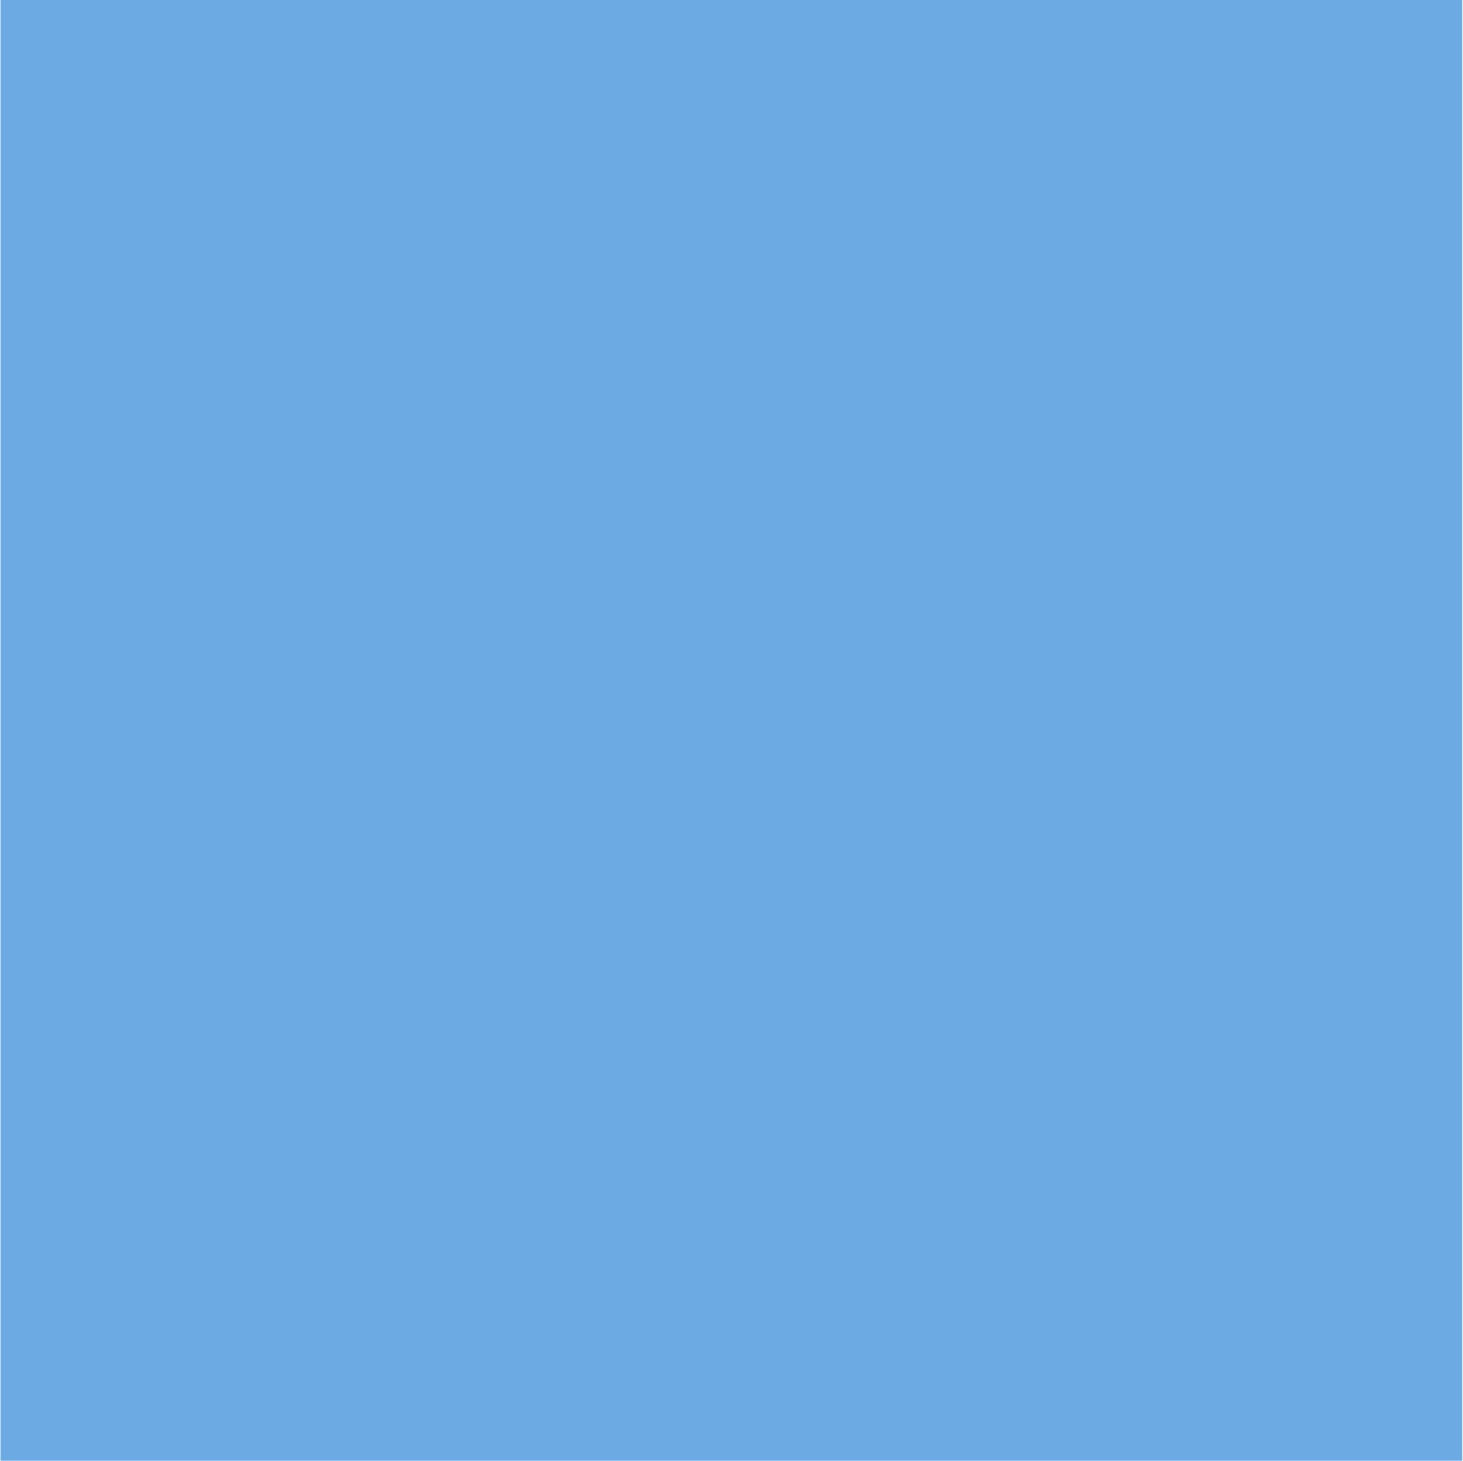 Background - Light Blue